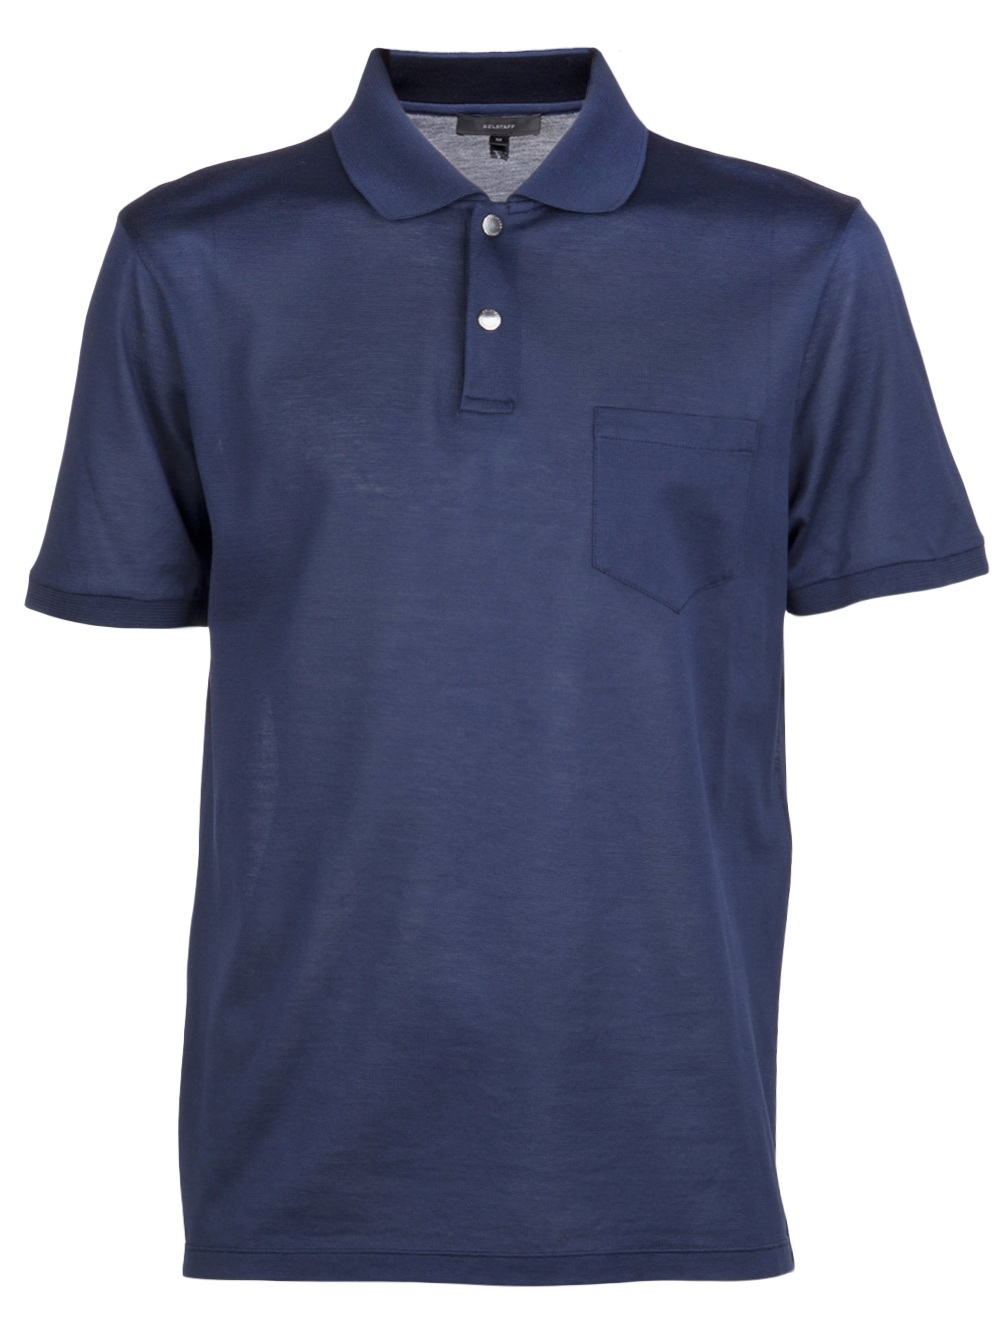 Belstaff beckford polo in blue for men indigo lyst for Mens shirts with snaps instead of buttons